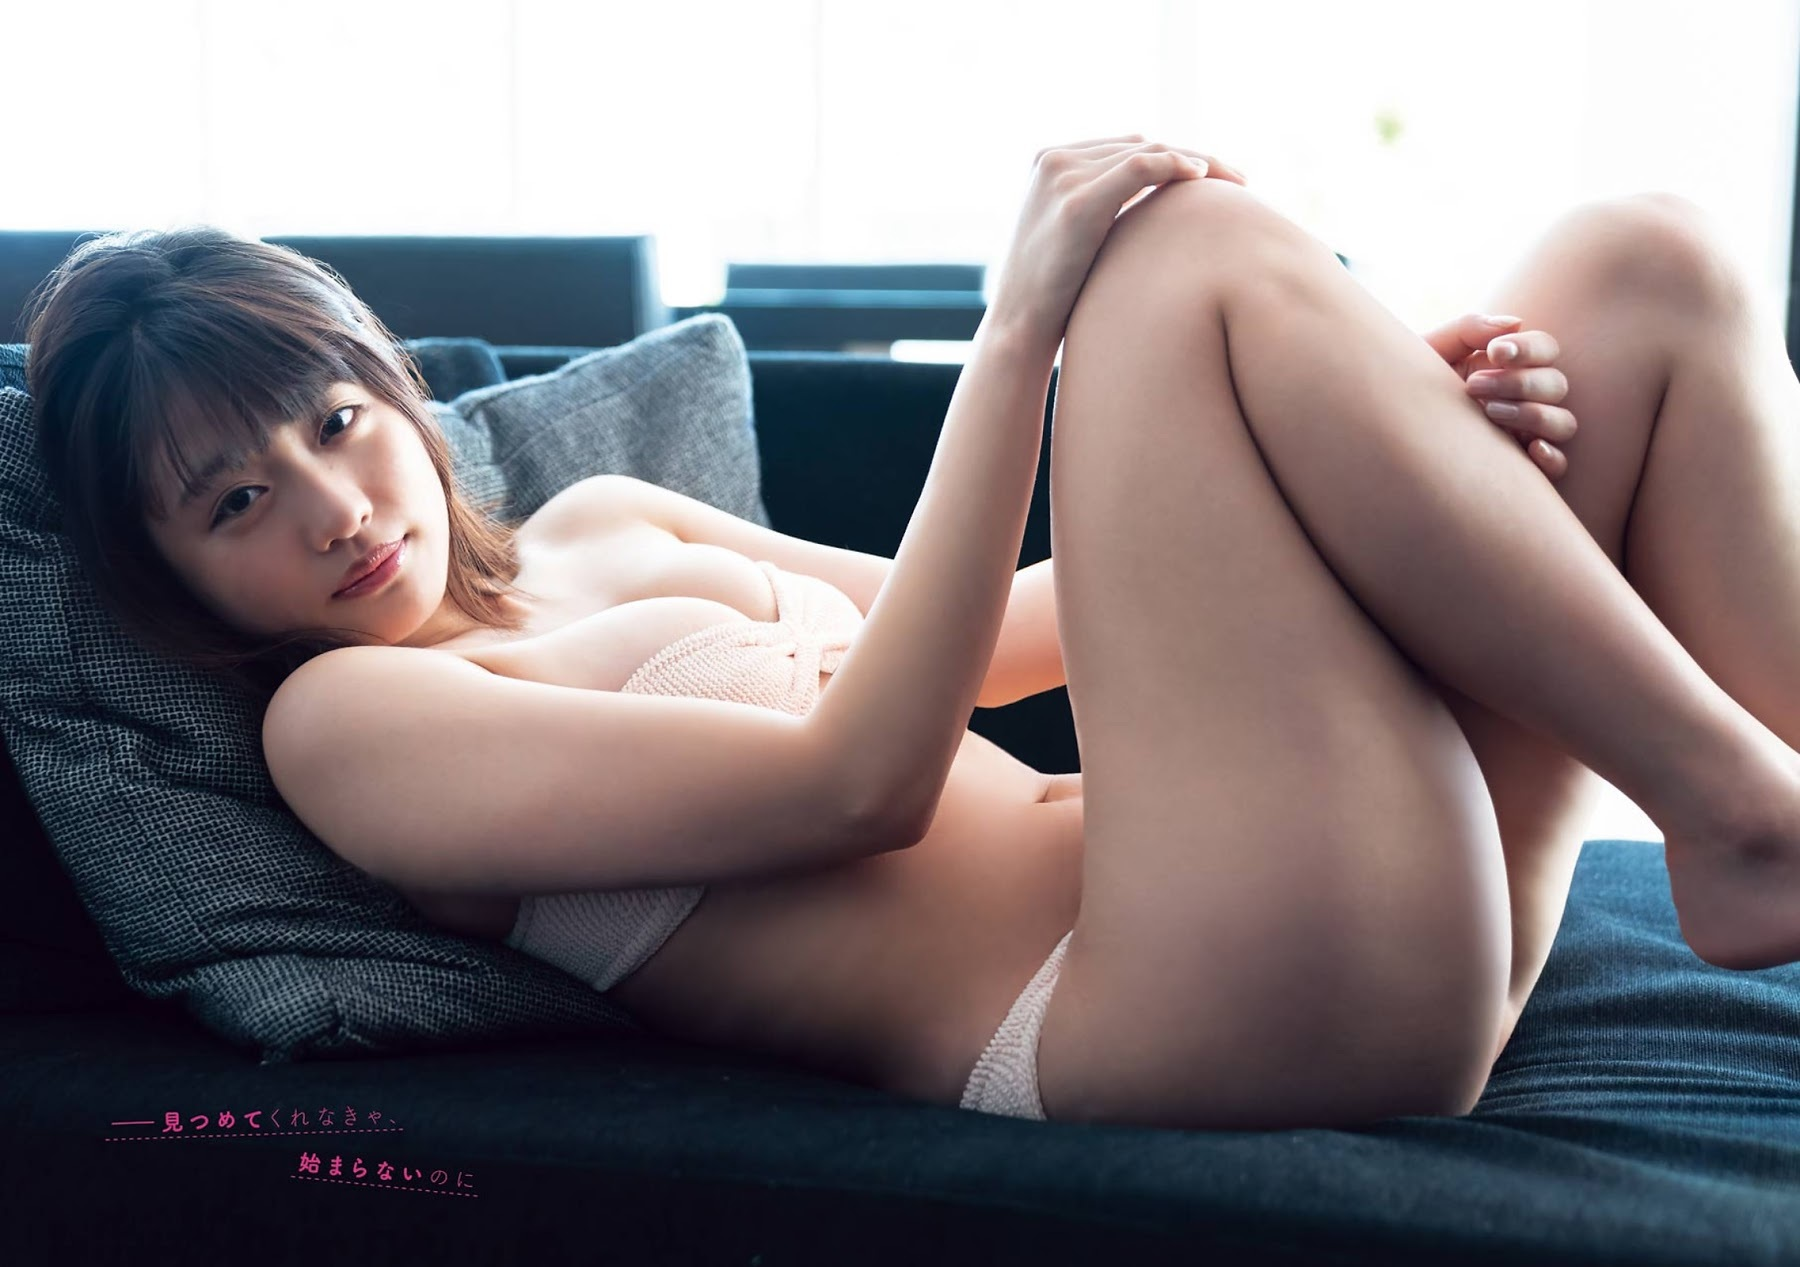 Momoka Ishida dominates the gravure industry with her versatile and beautiful body007